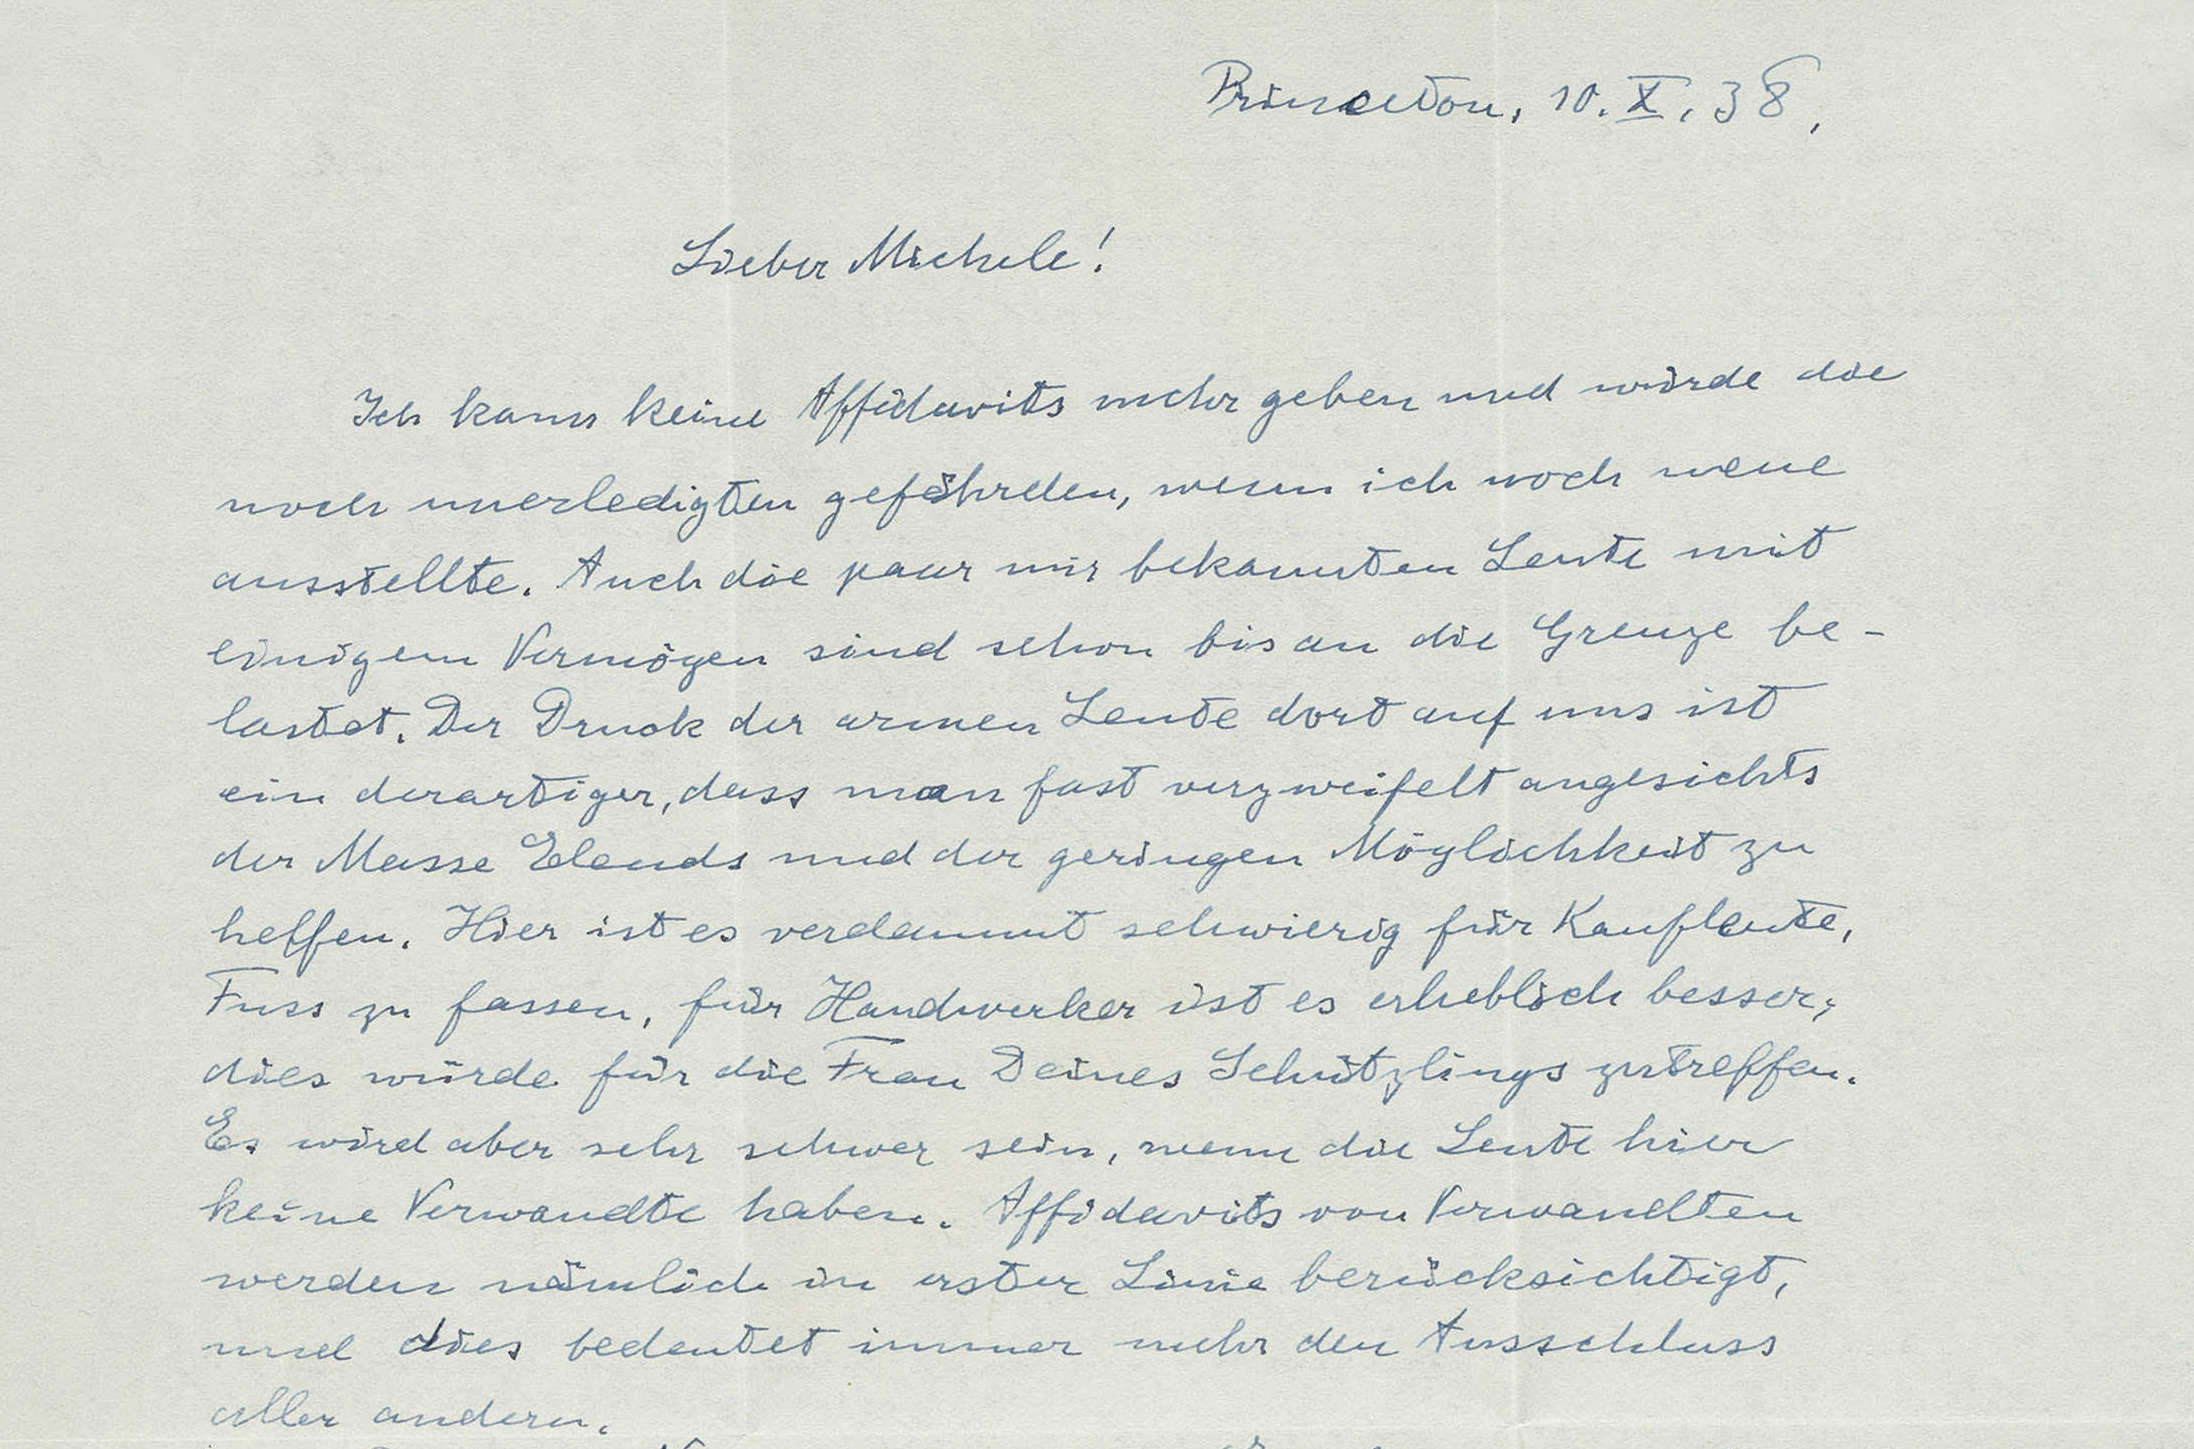 A letter written by Albert Einstein on October 10, 1938 featuring his fears for Europe following the 1938 Munich Agreement (Nate D. Sanders Auctions)